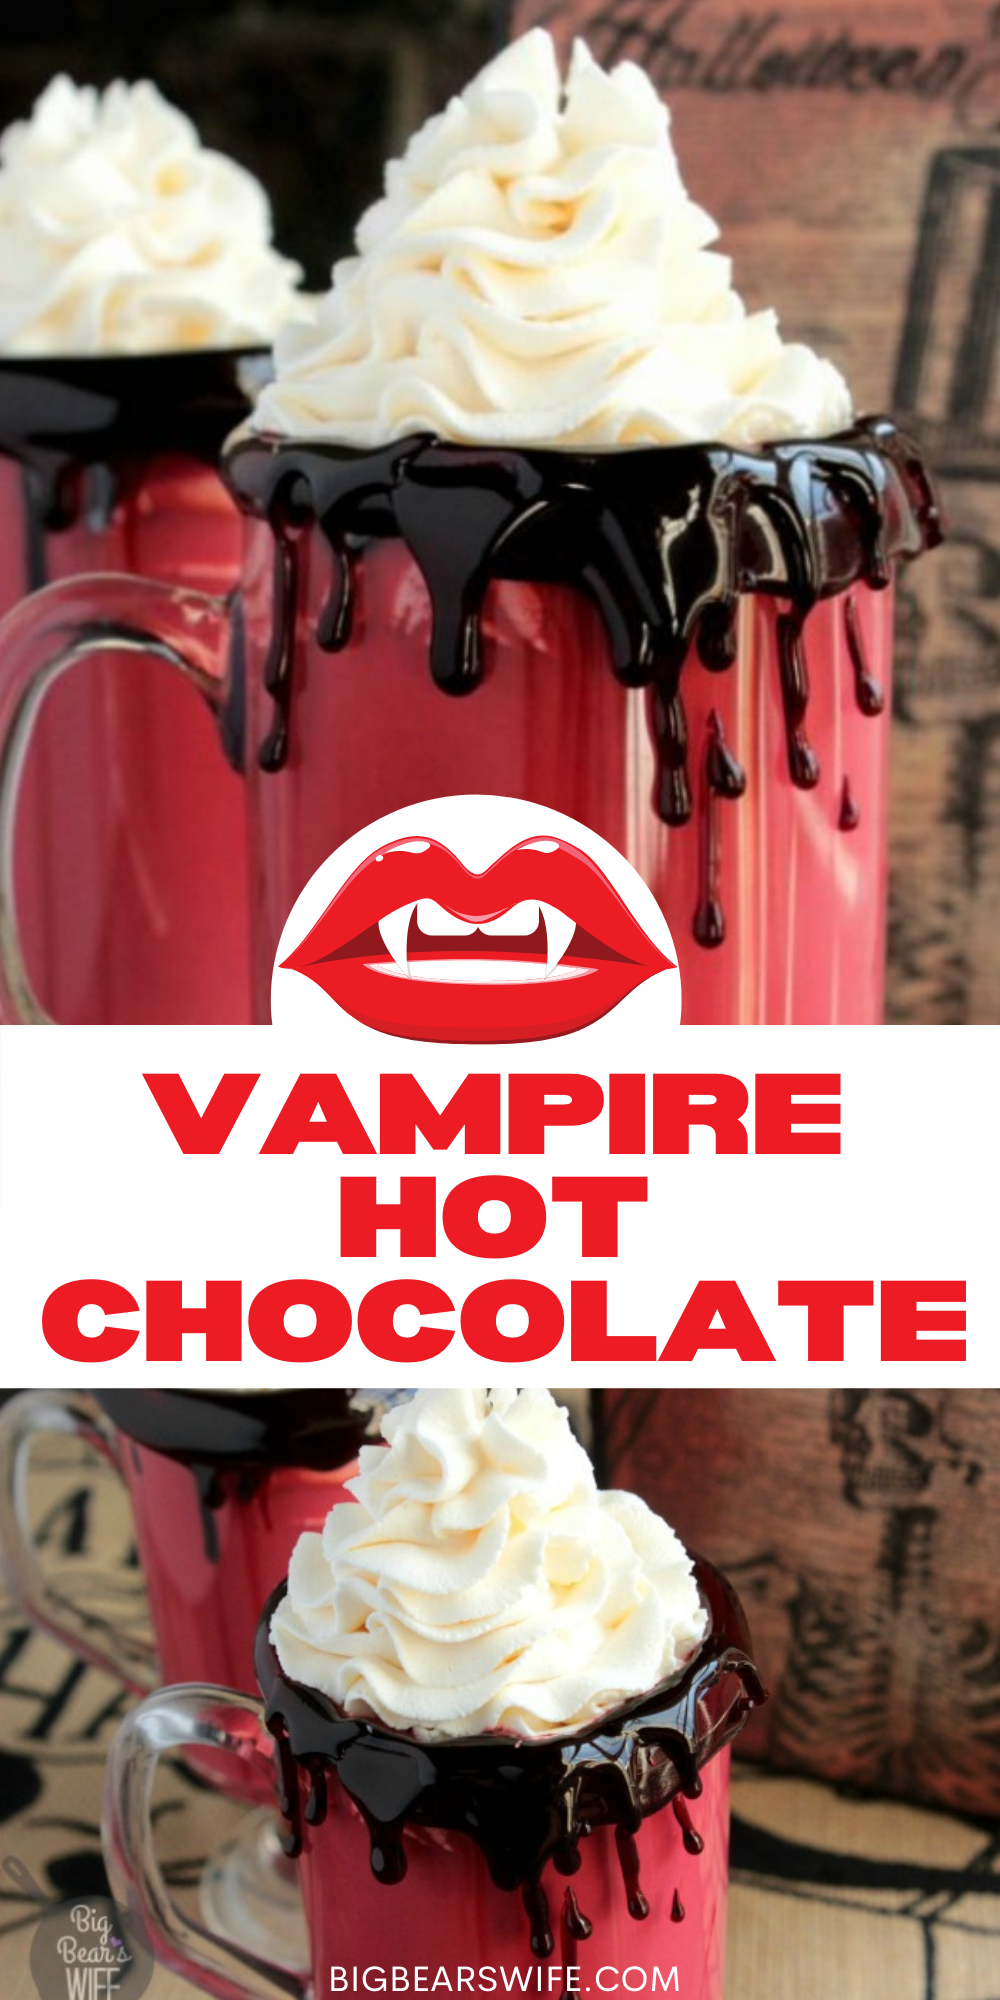 """Vampire Hot Chocolate - """"Some are born into sweet delight, some are born to endless nights.""""- William Blake. This poem line isn't directly related to vampires but it does seem to fit doesn't it. It does sound like it's perfect for thisVampire Hot Chocolate too! via @bigbearswife"""